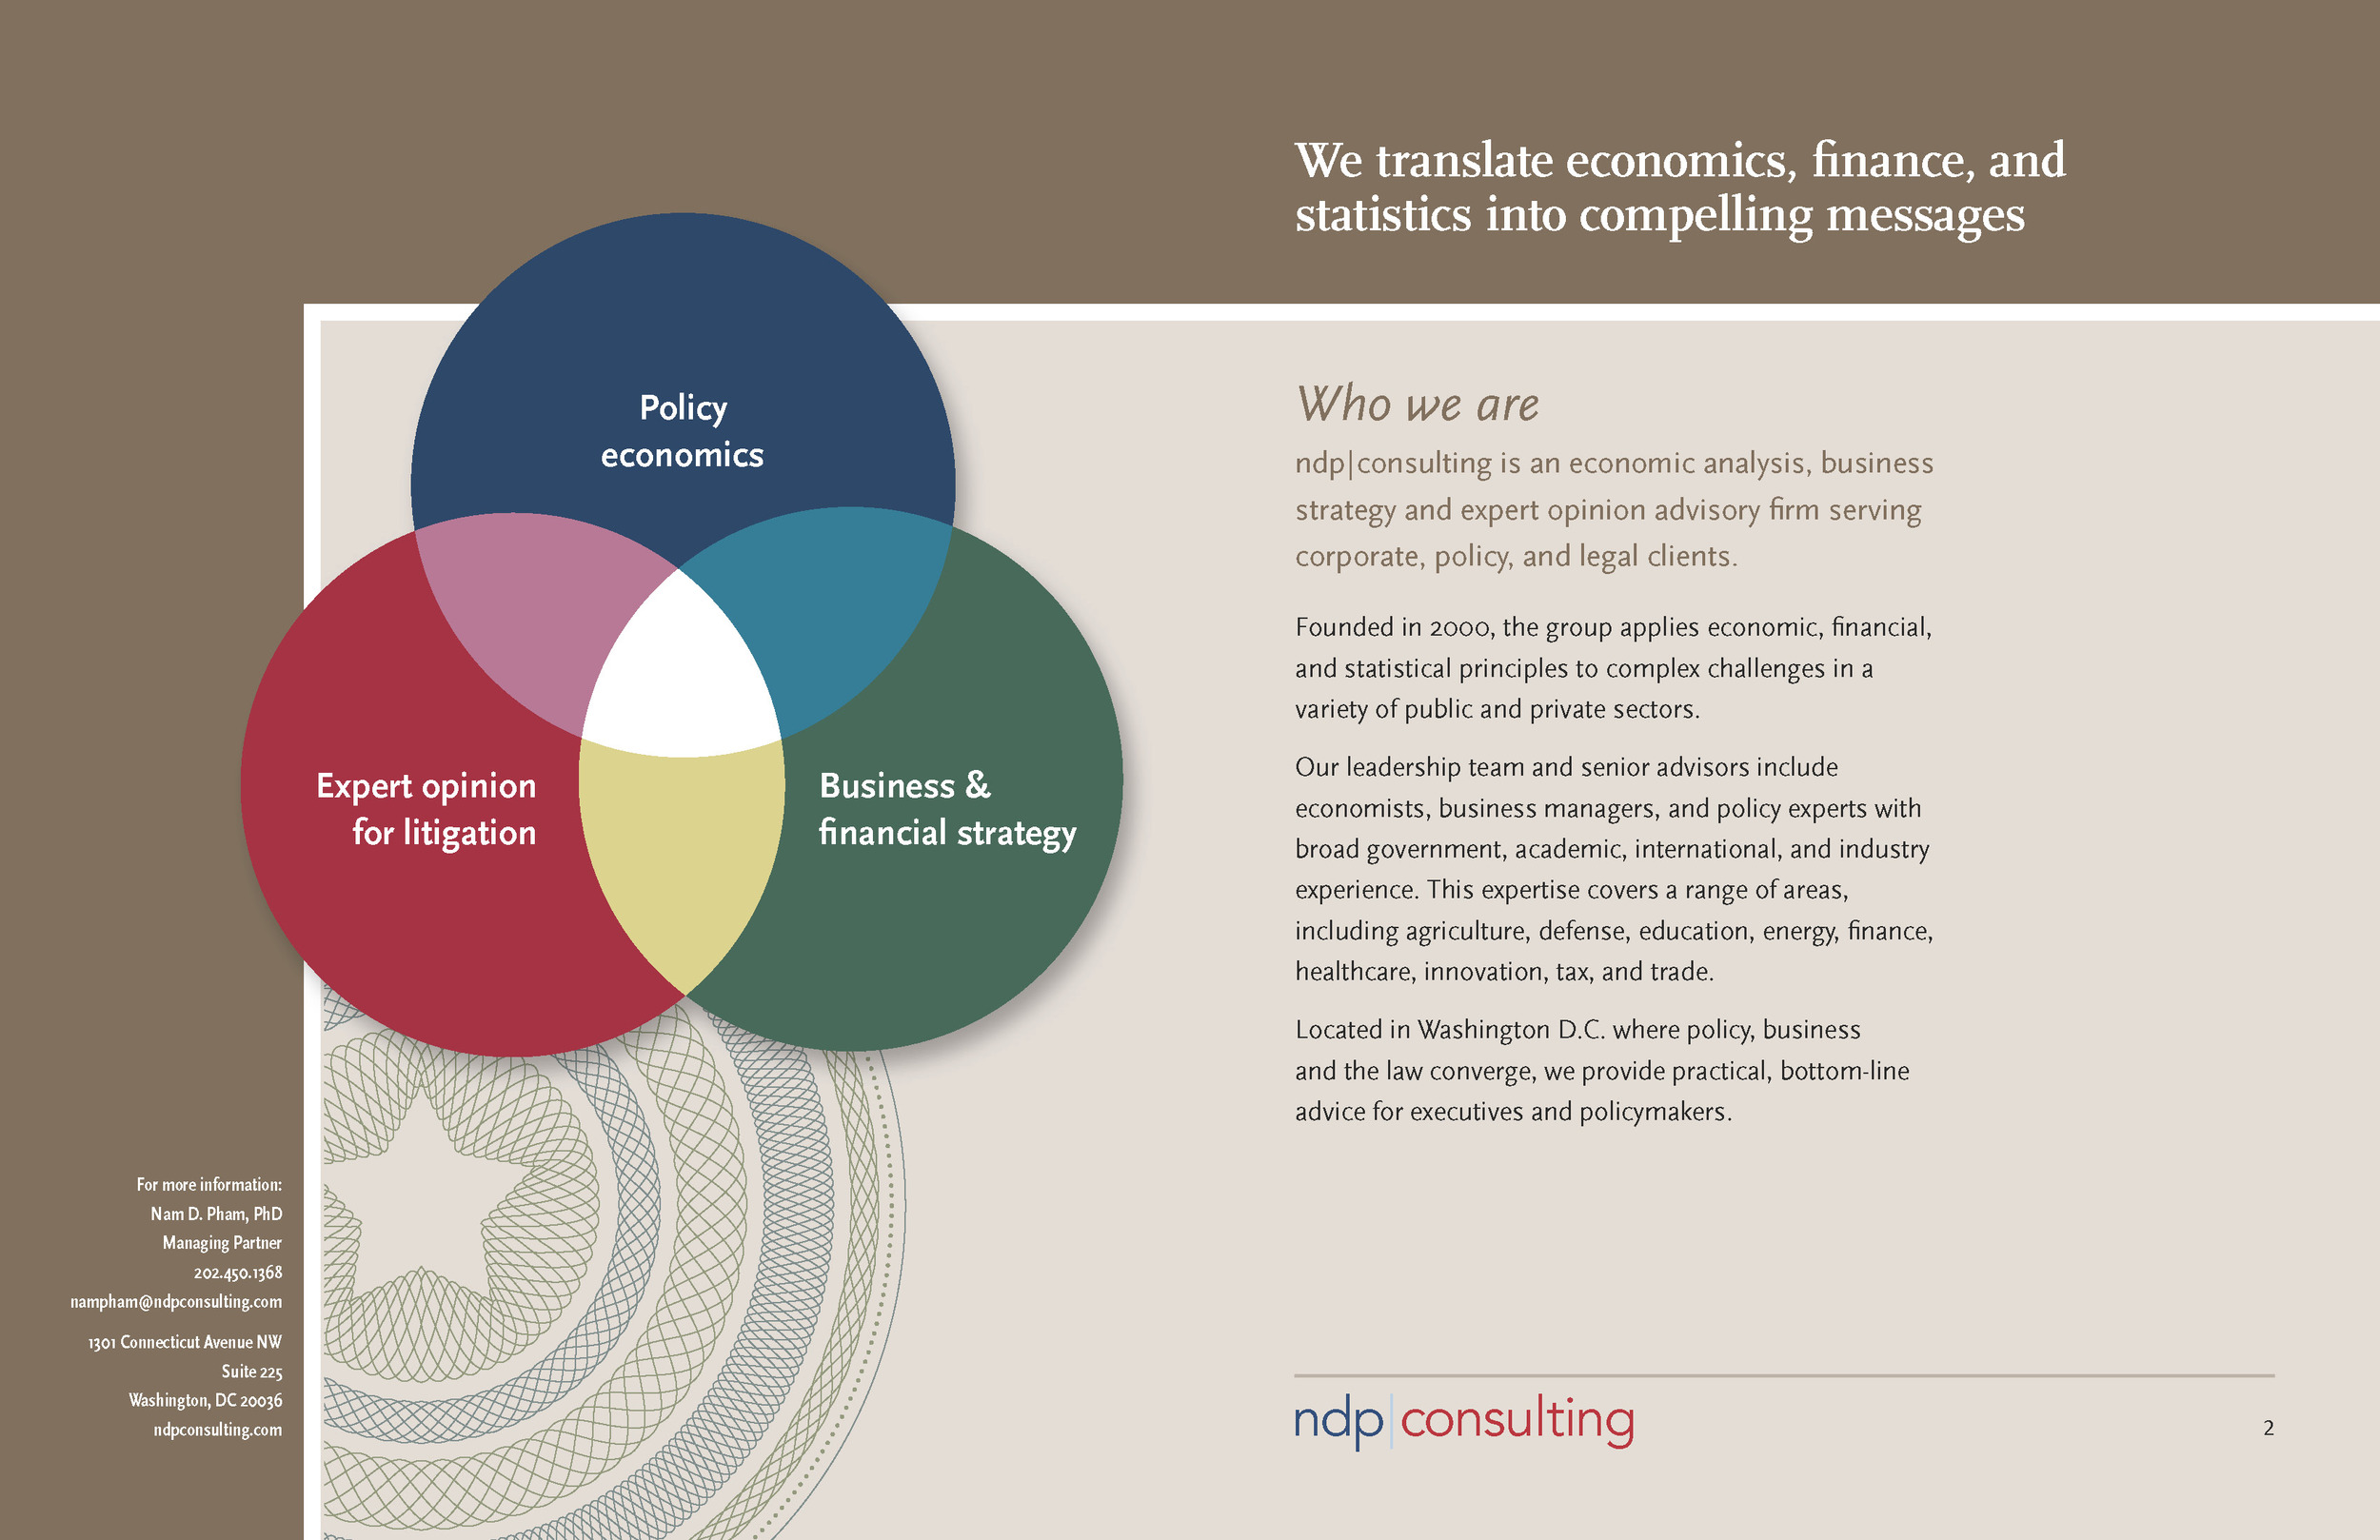 NDP Consulting Group Overview 2012_Page_02.jpg